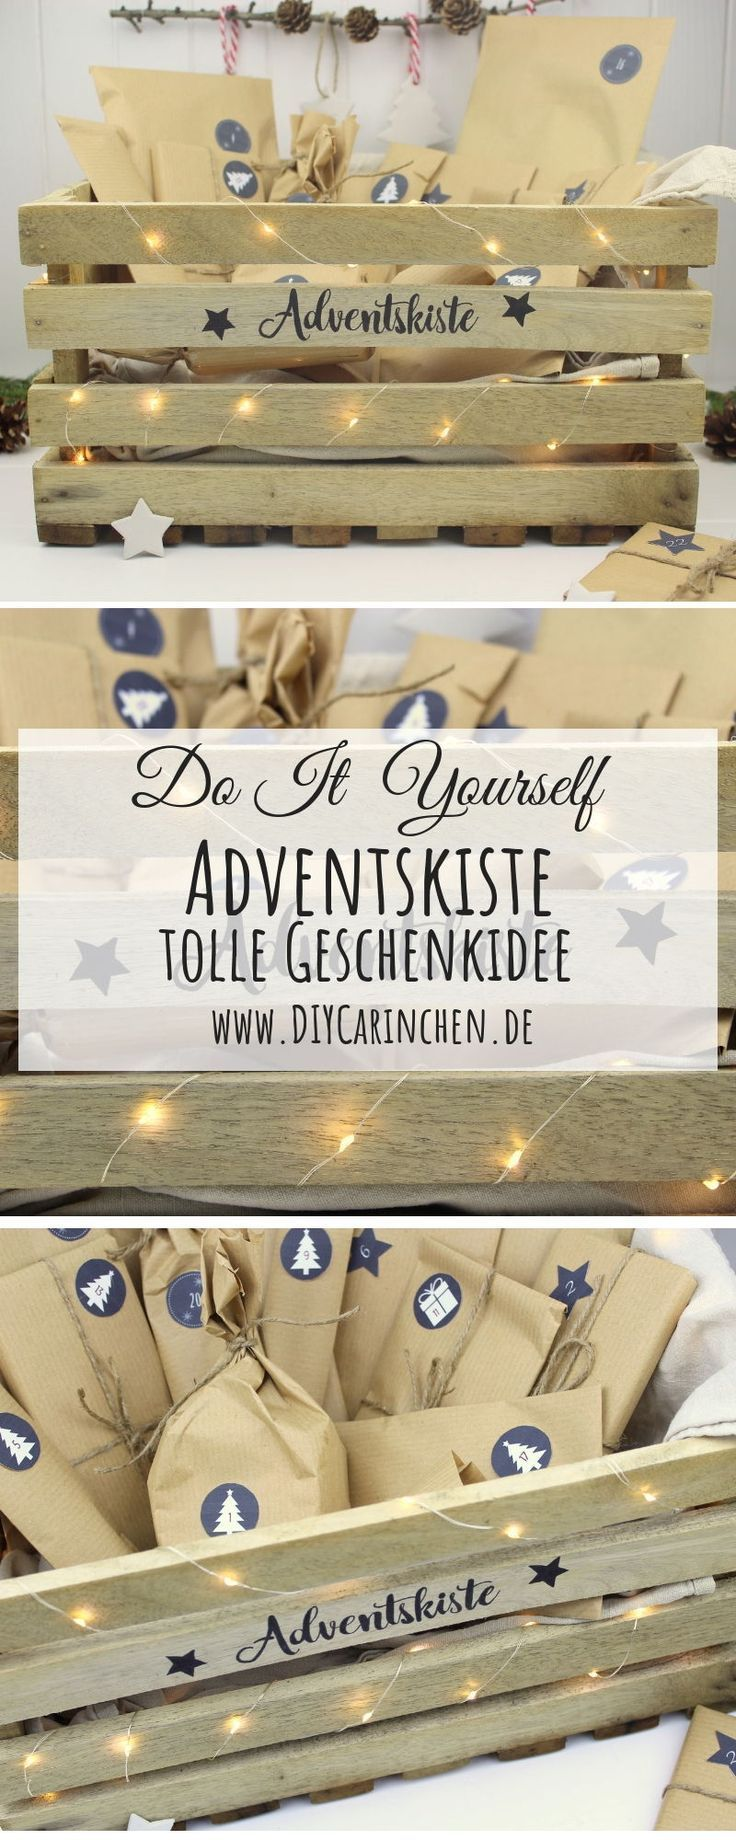 DIY – Adventskiste, Adventskalender in einer Kiste selber machen - https://pickndecor.com/haus #julepyntinspiration